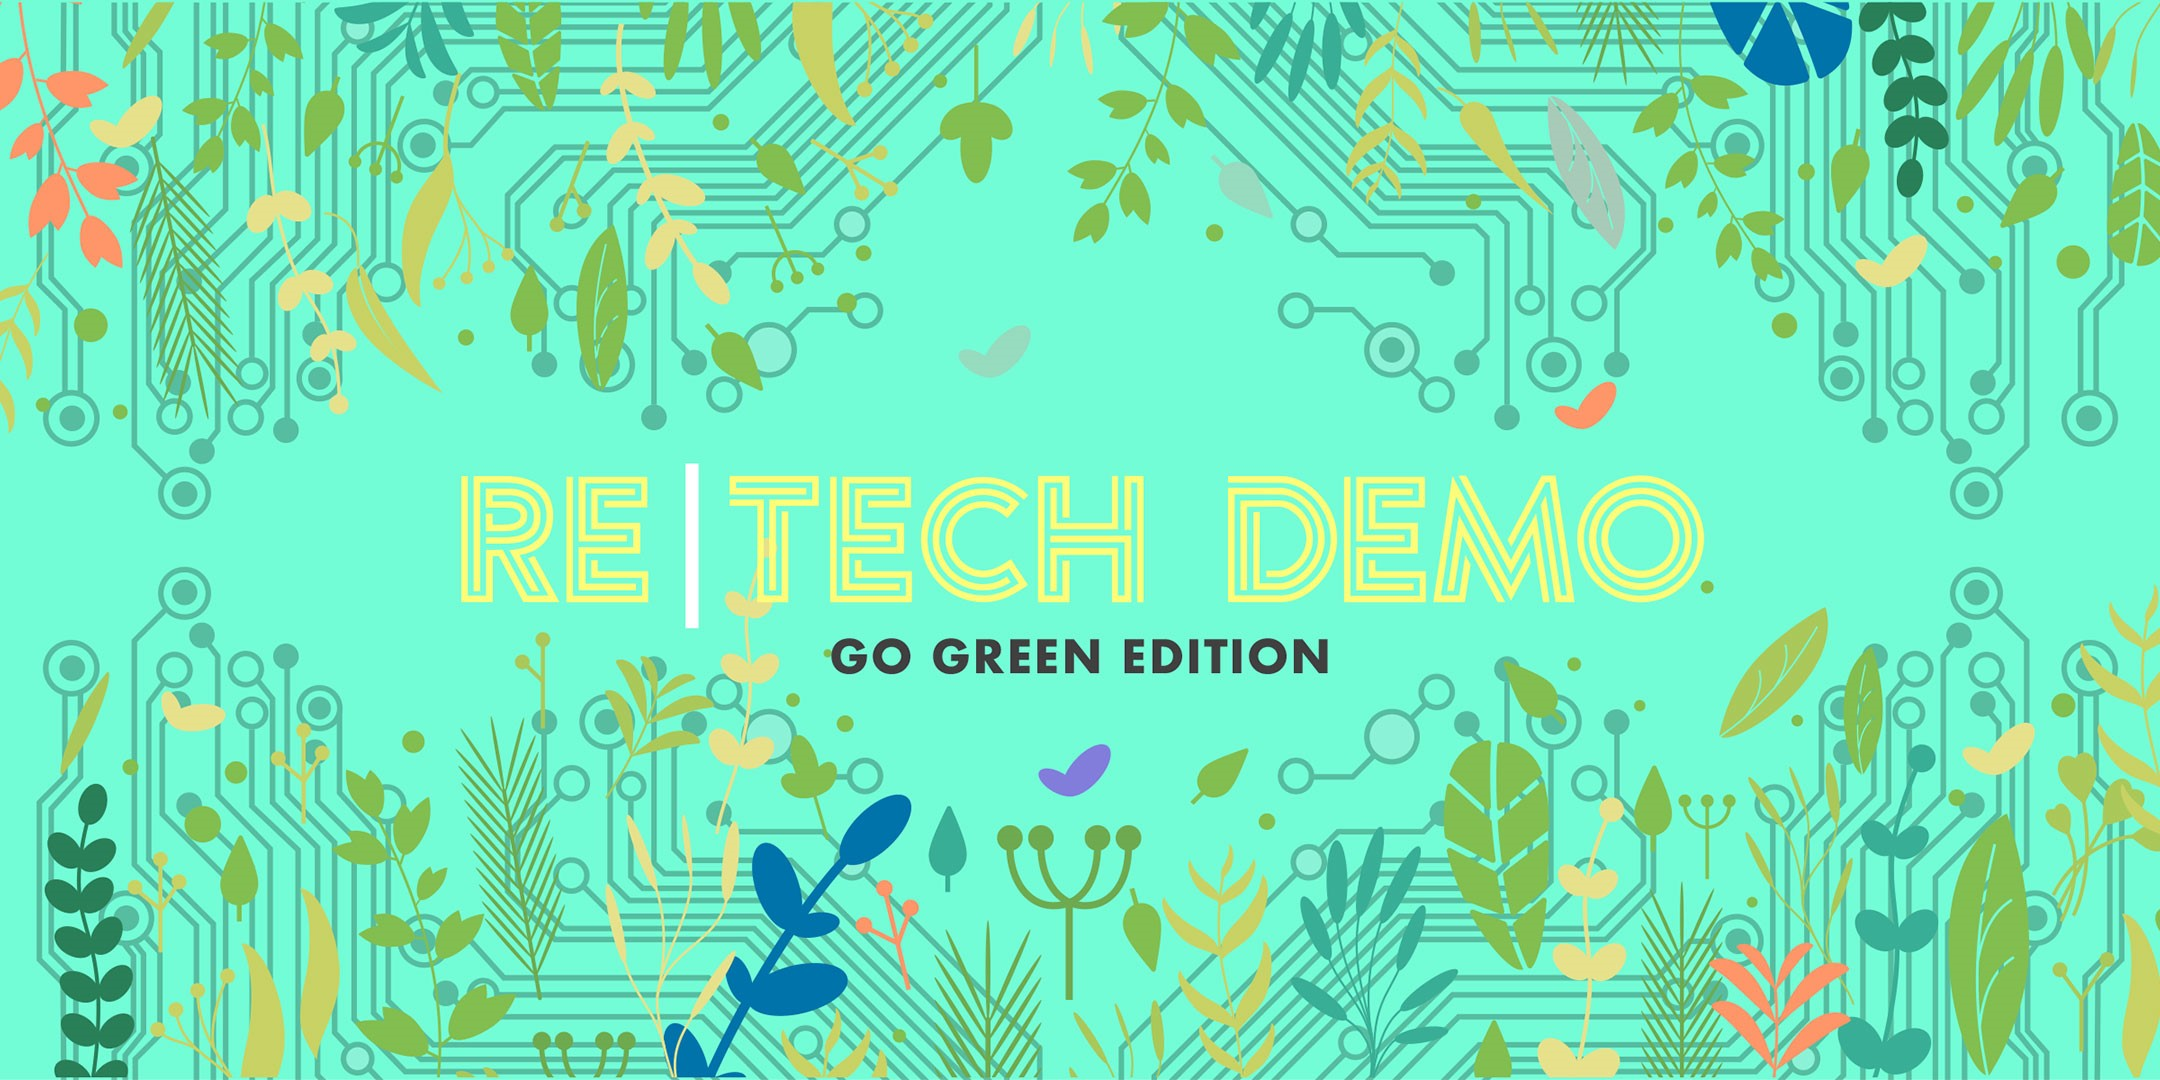 Re Tech Demo_Go Green.jpg